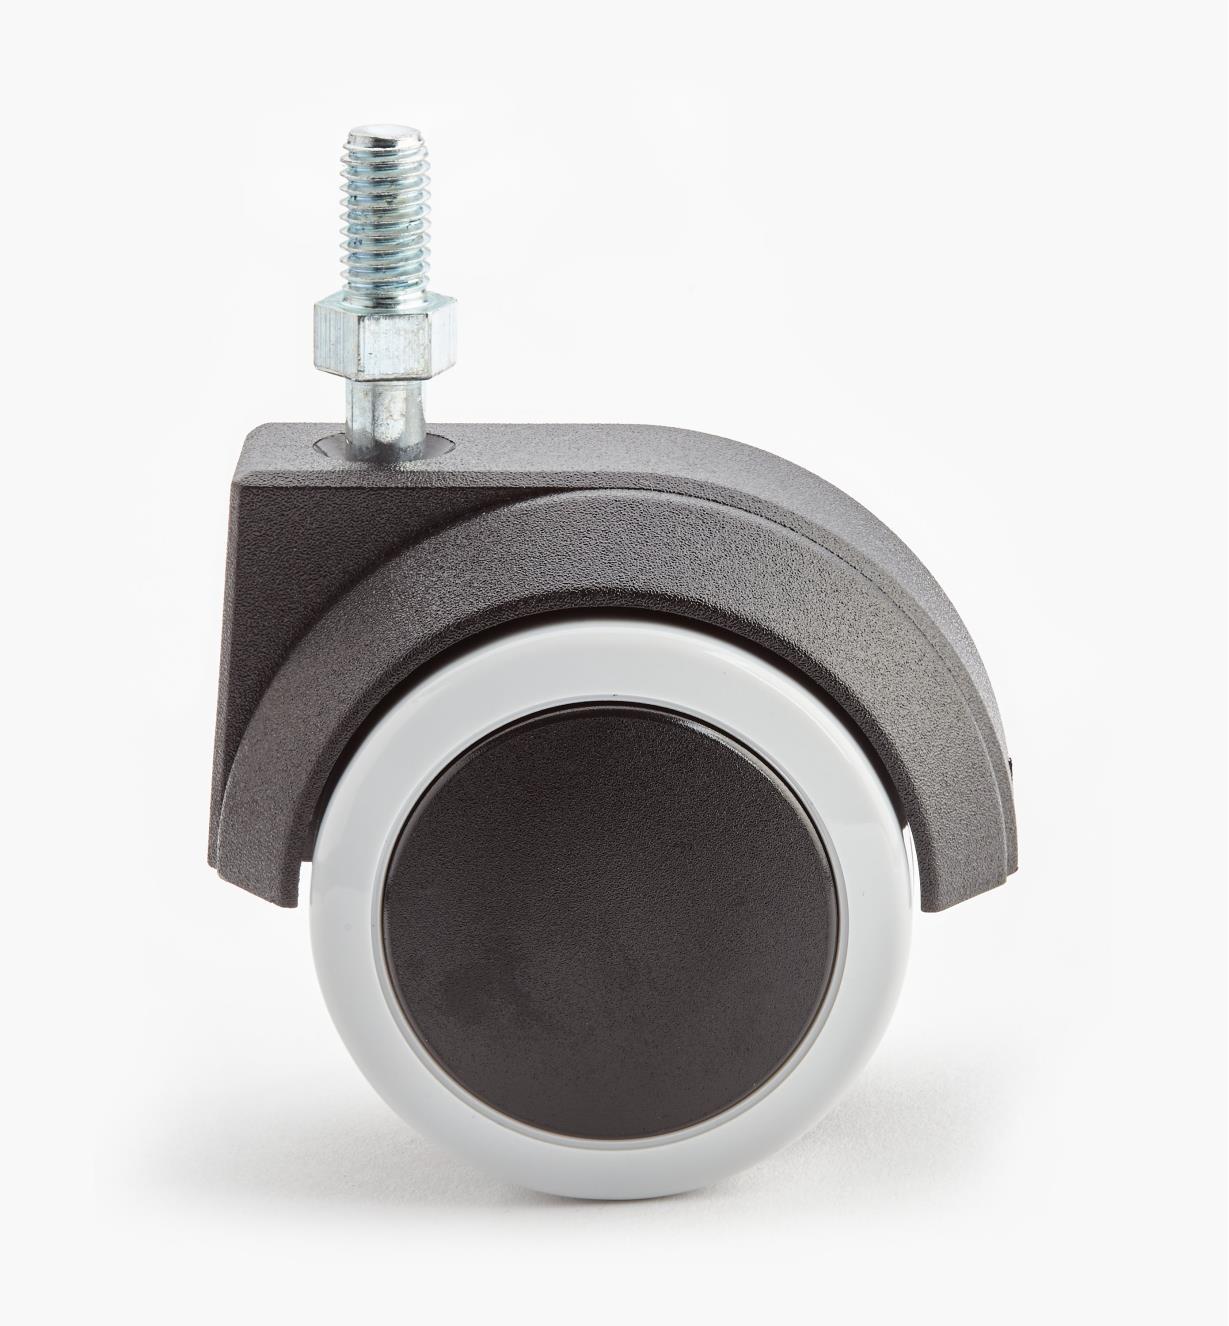 00K2730 - Bolt-Mount Caster (without brake), each